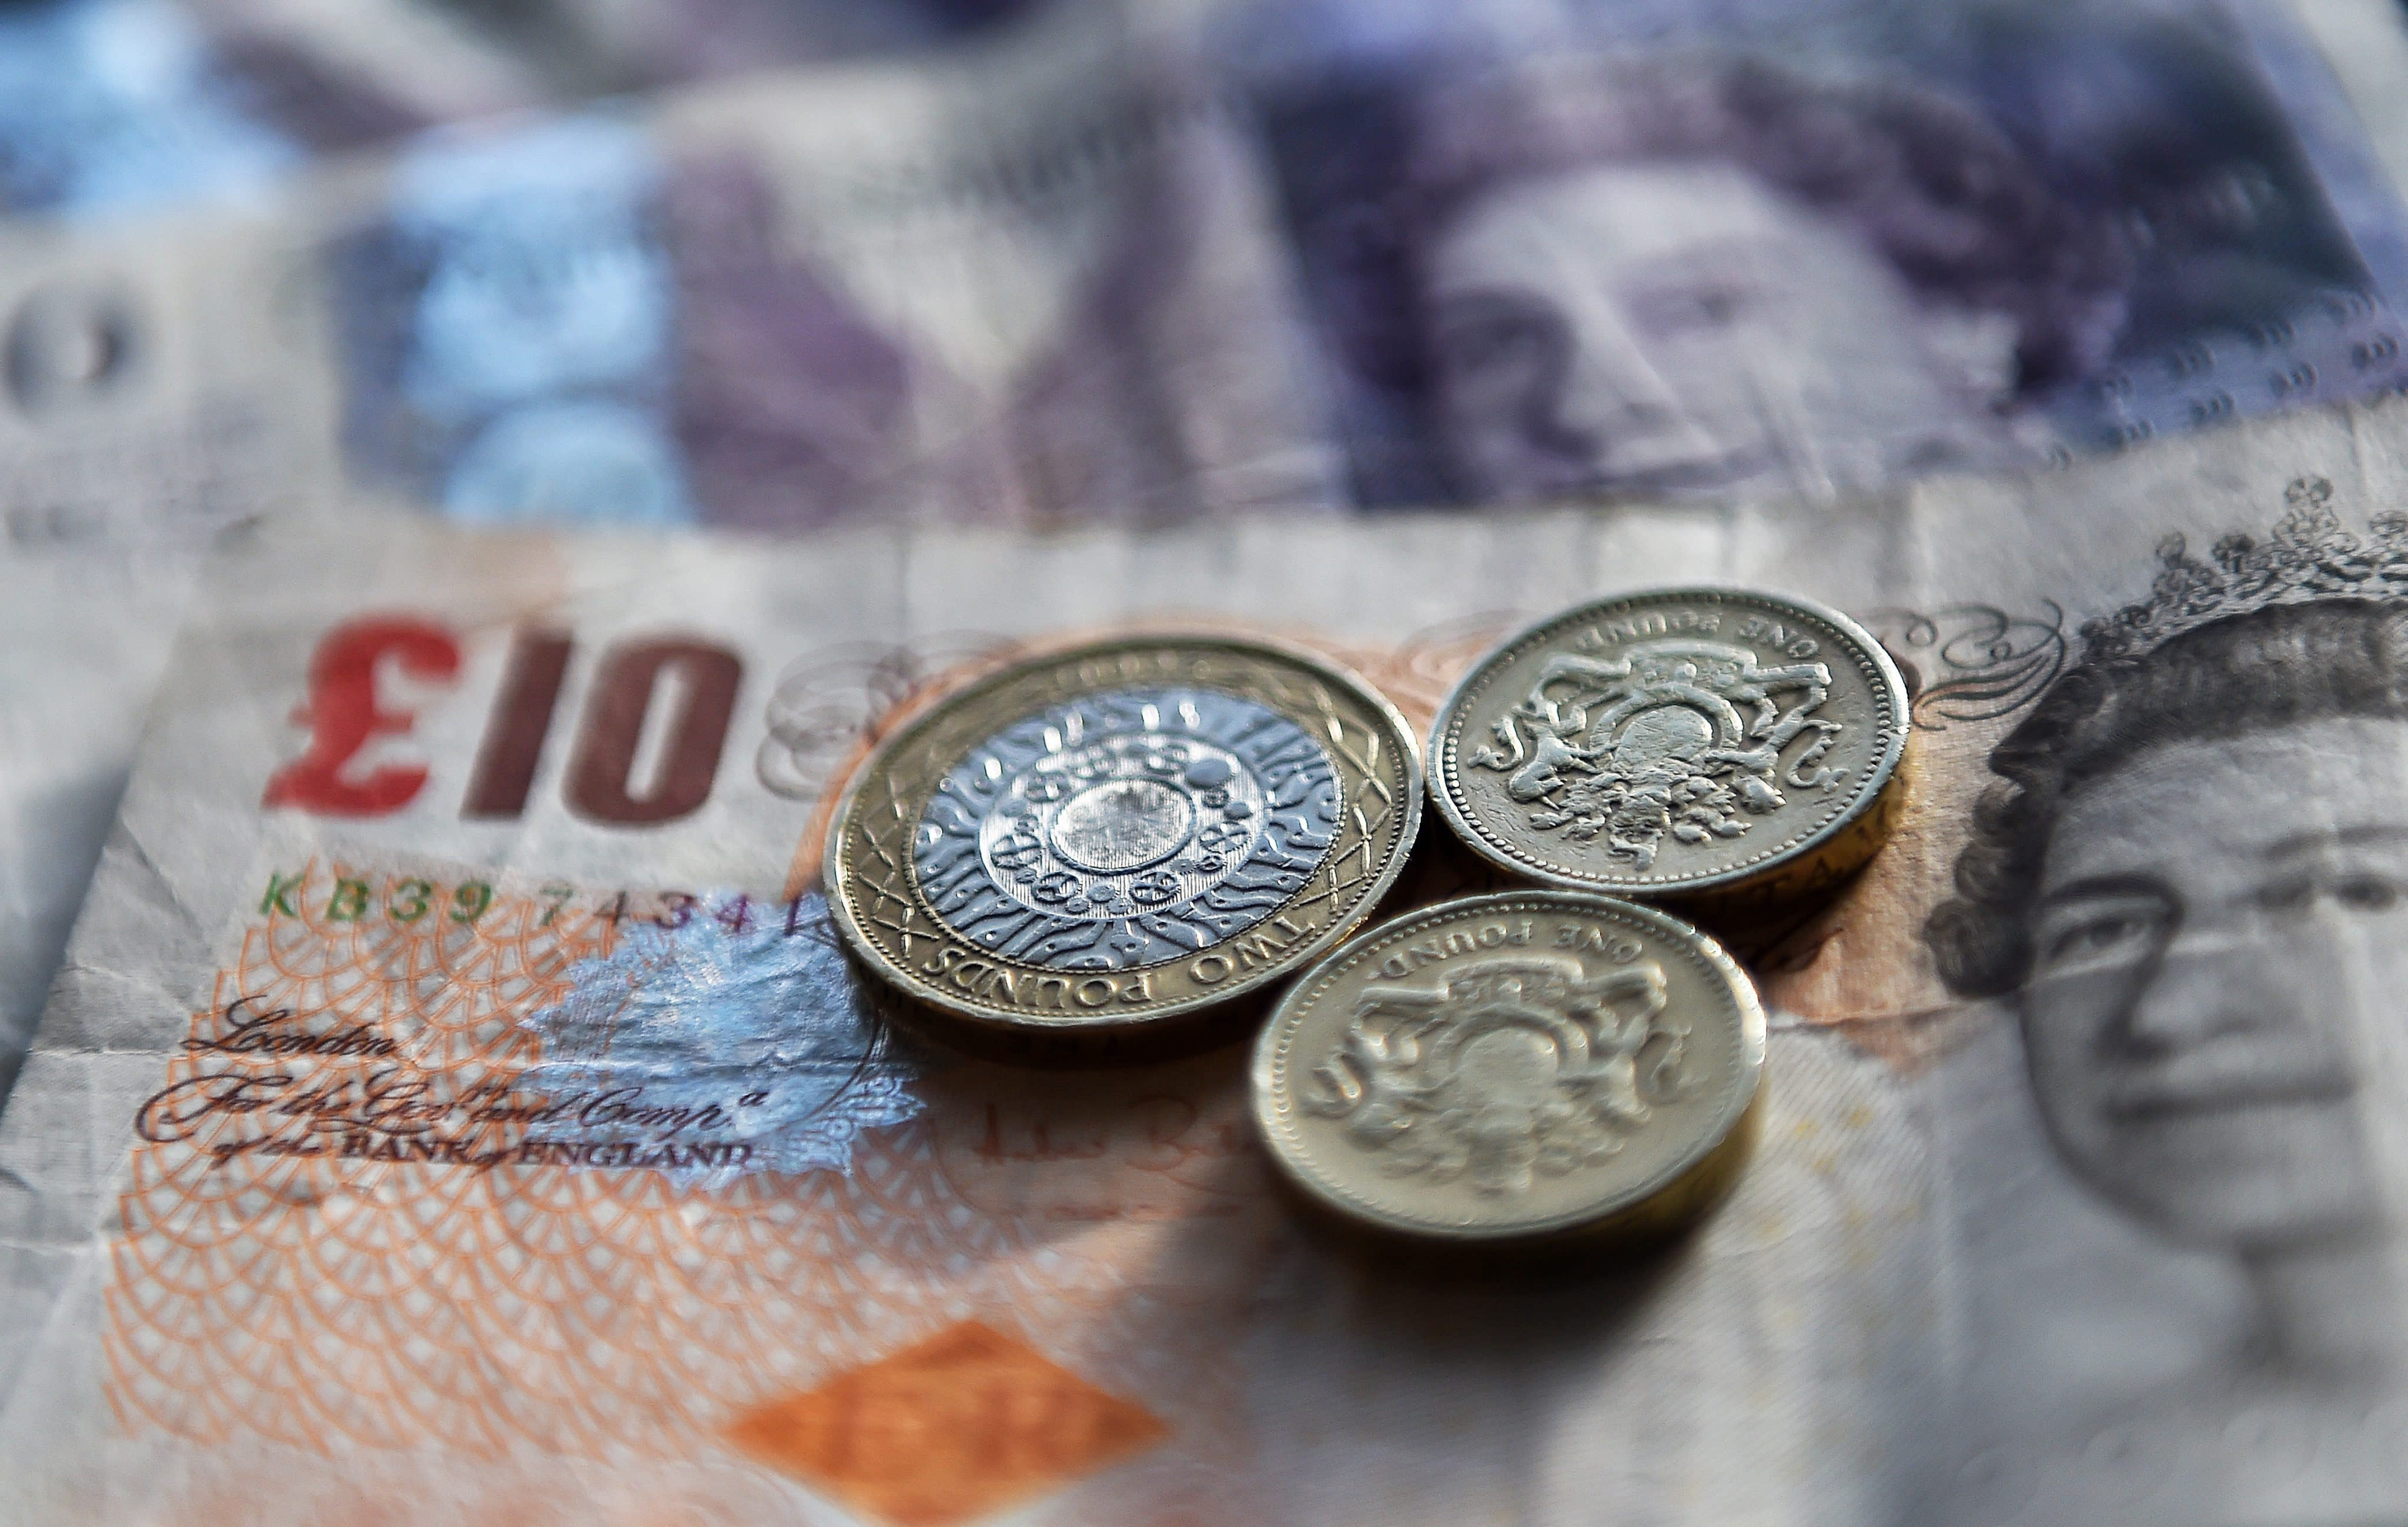 Almost £2bn withdrawn from pensions in last quarter